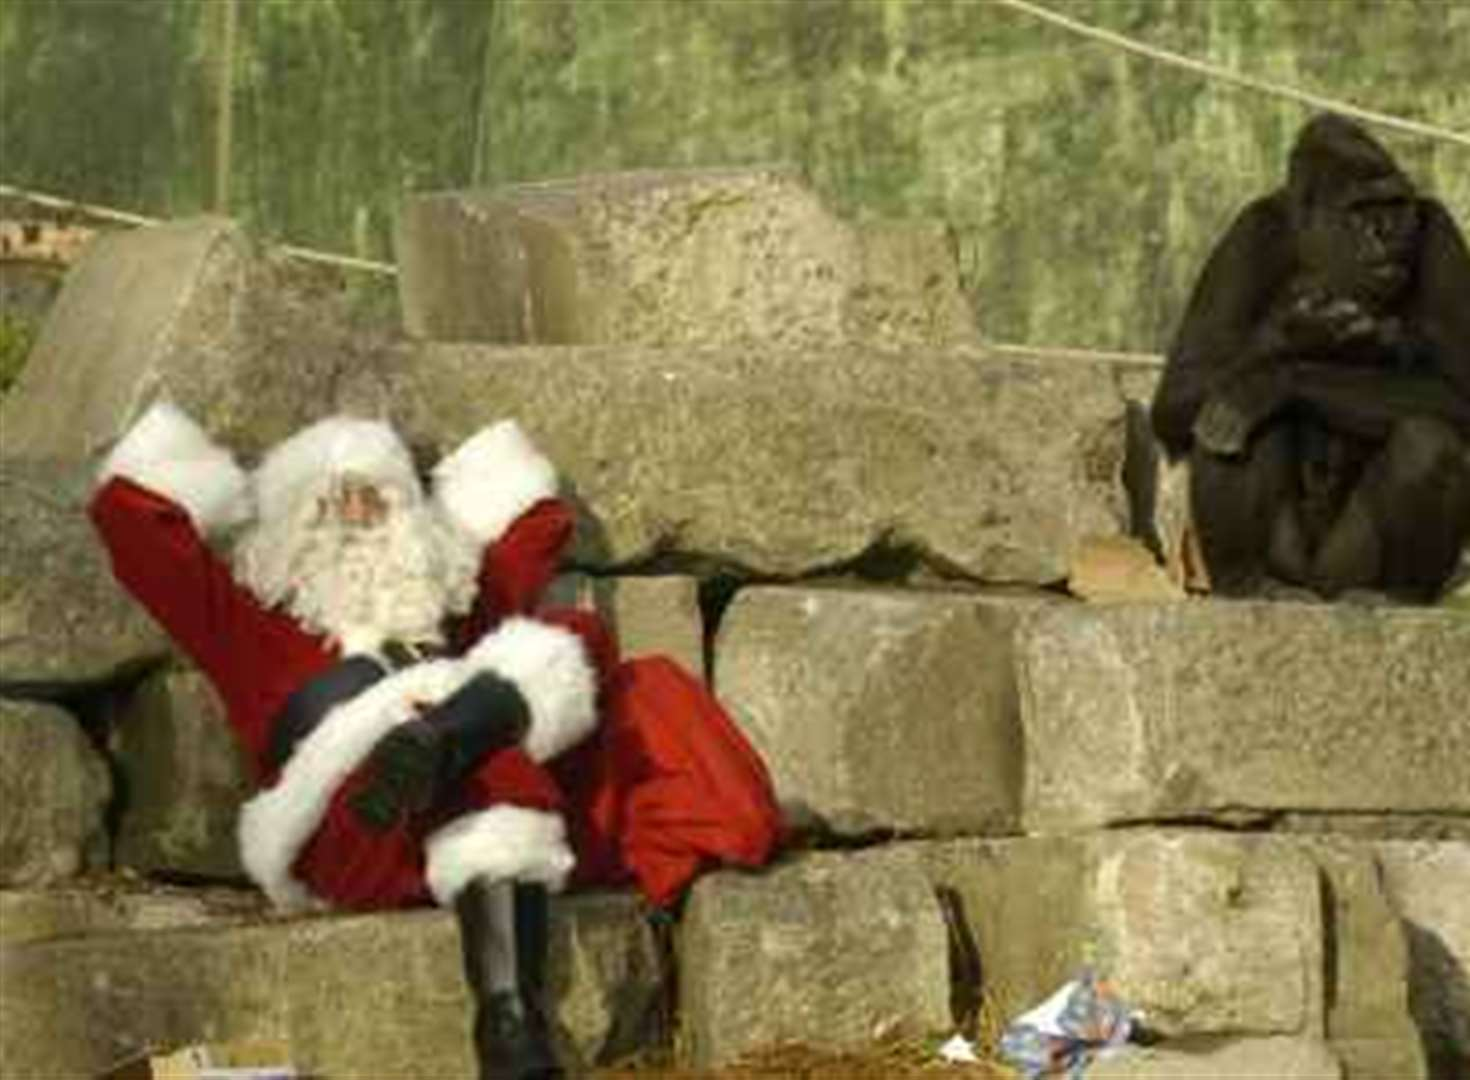 Special Christmas feast for gorillas